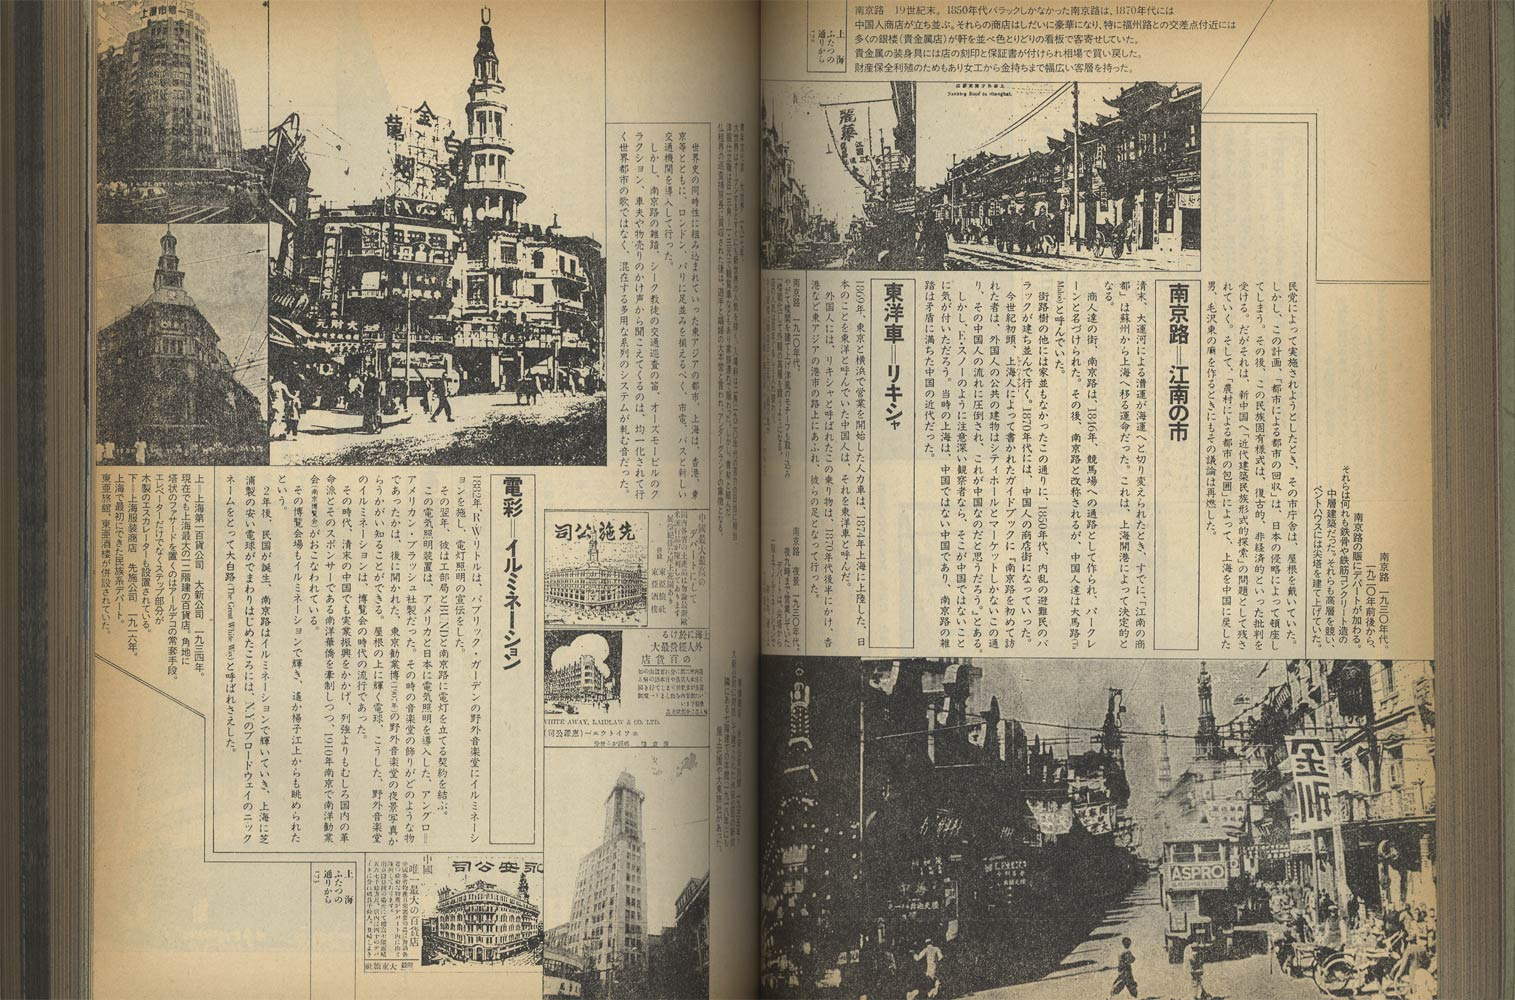 季刊GS la gaya scieza たのしい知識 / Vol.3 Oct 1985[image4]